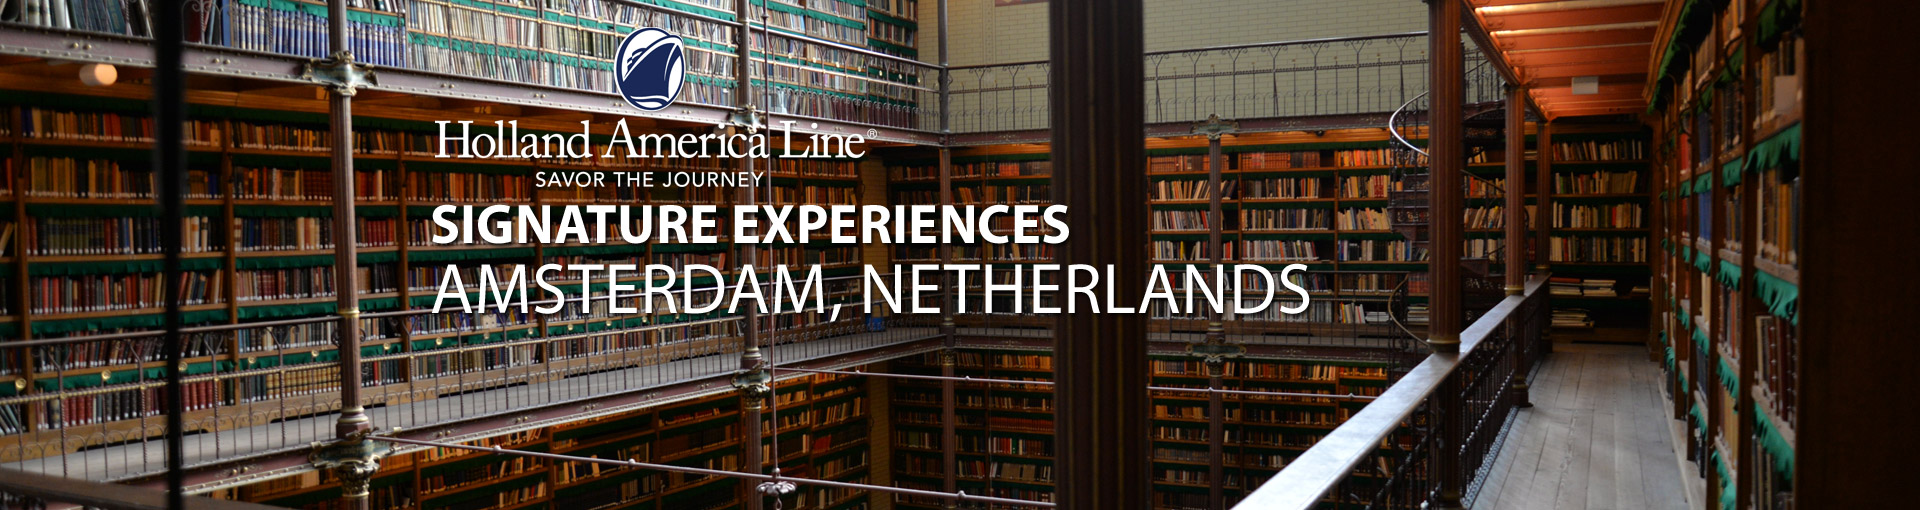 Holland America Signature Experiences - Amsterdam, Netherlands